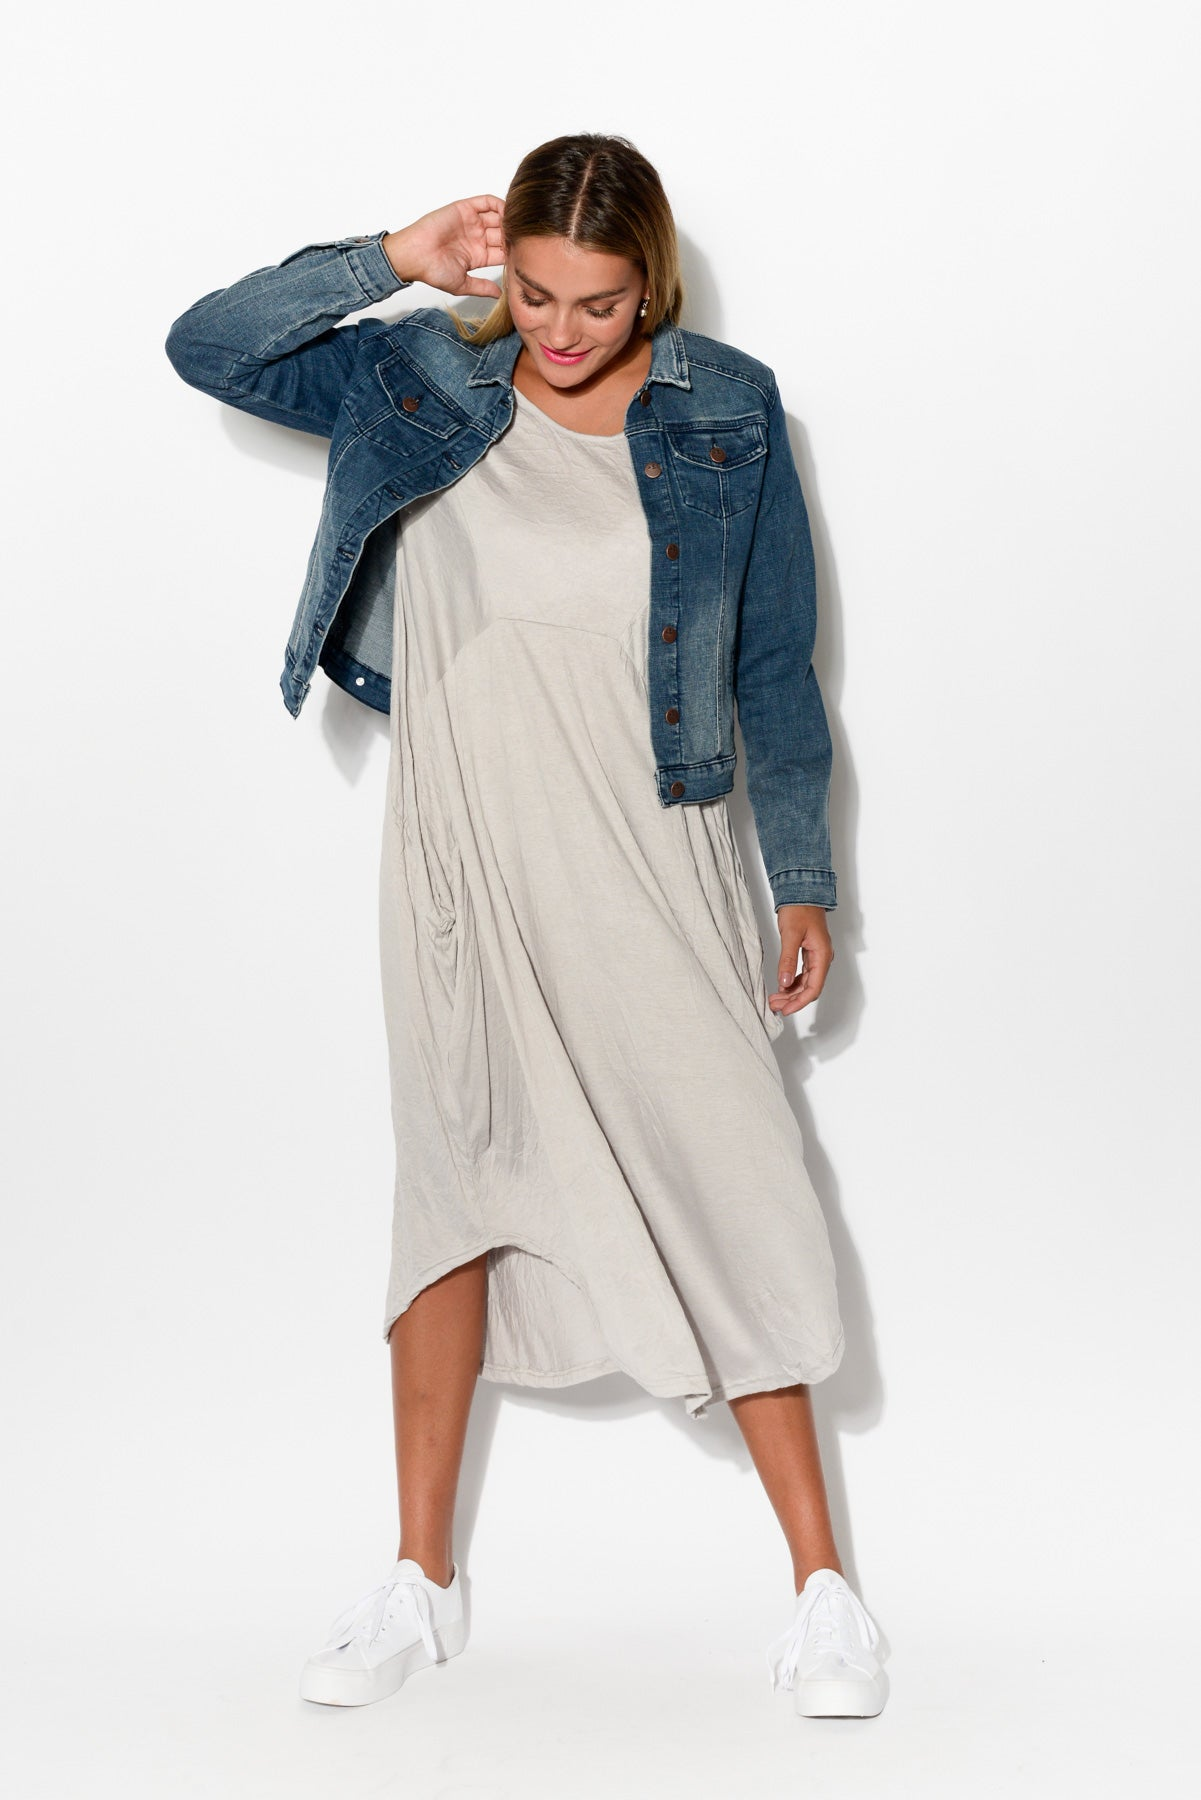 Grey Crinkle Cotton Scoop Dress - Blue Bungalow